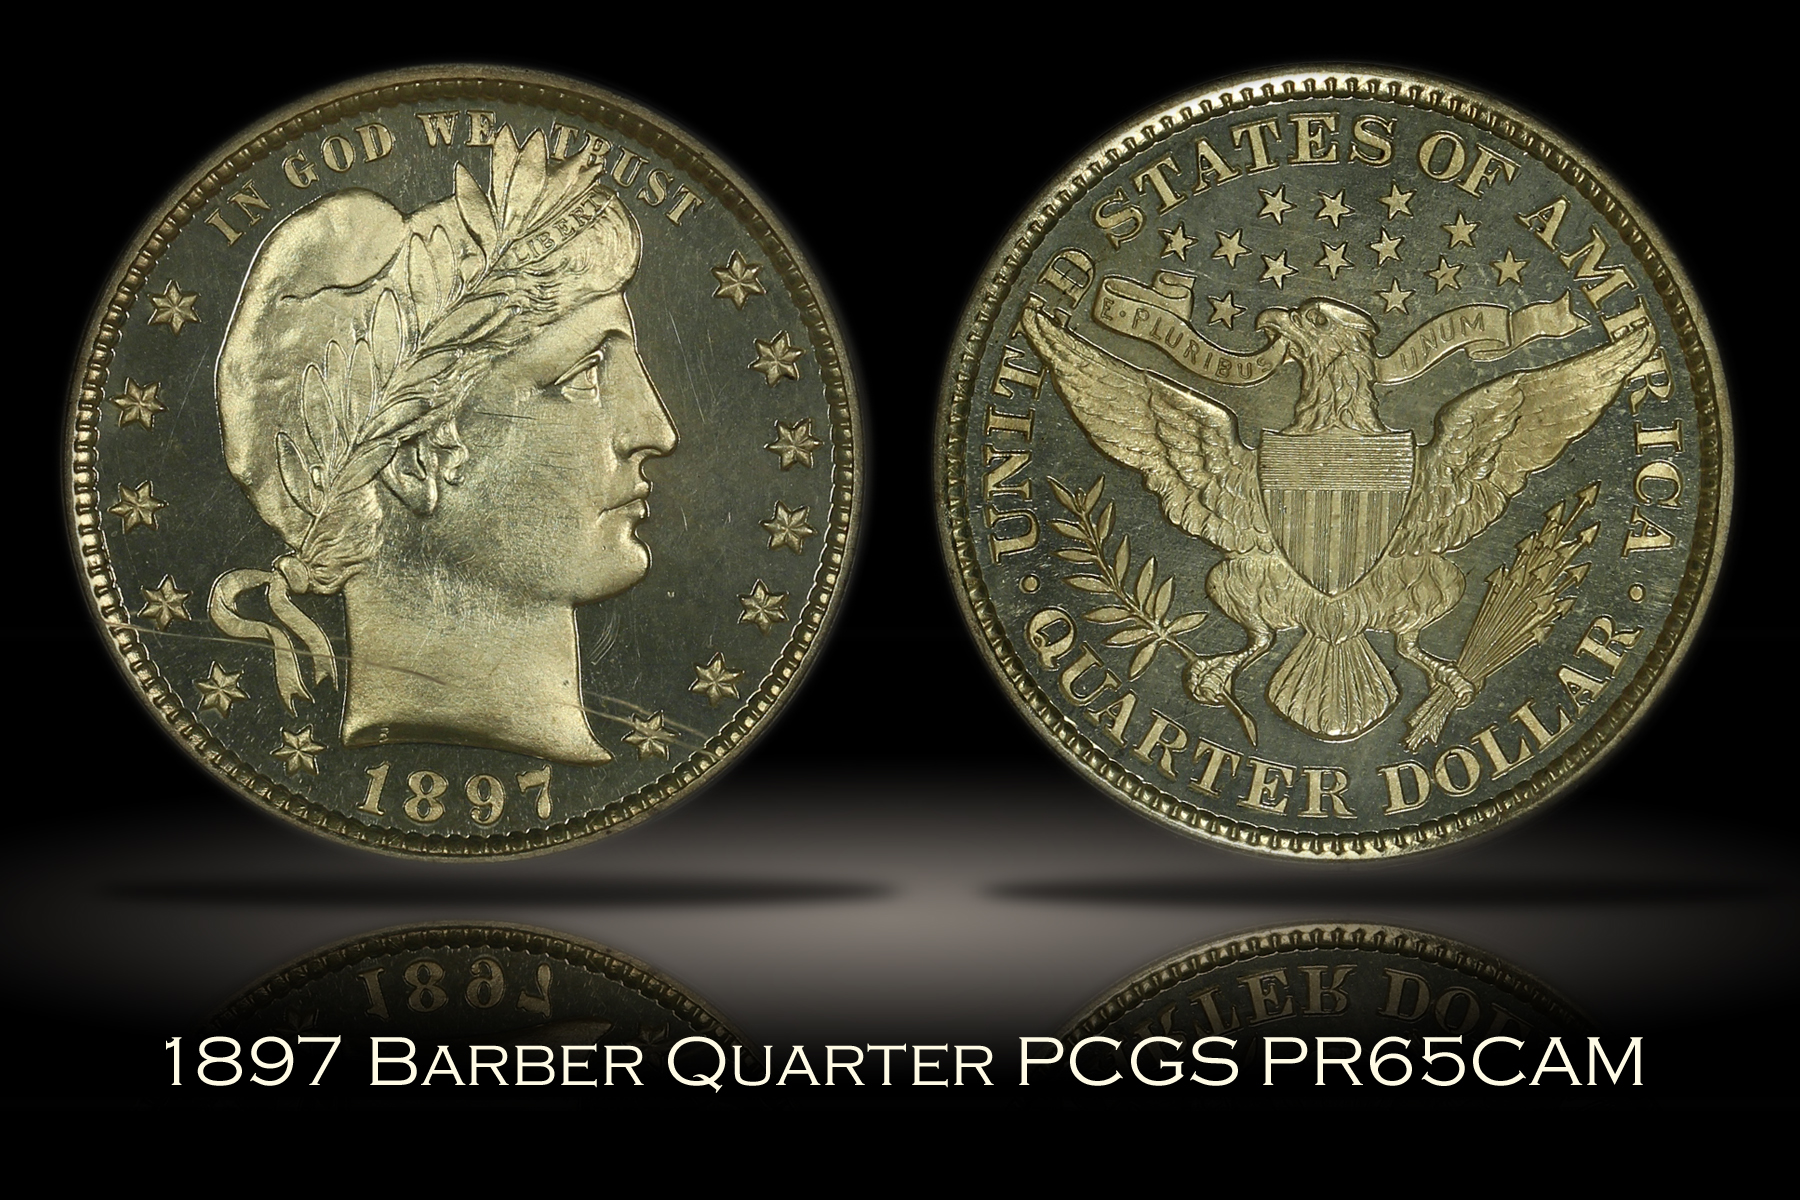 1897 Proof Barber Quarter PCGS PR65CAM